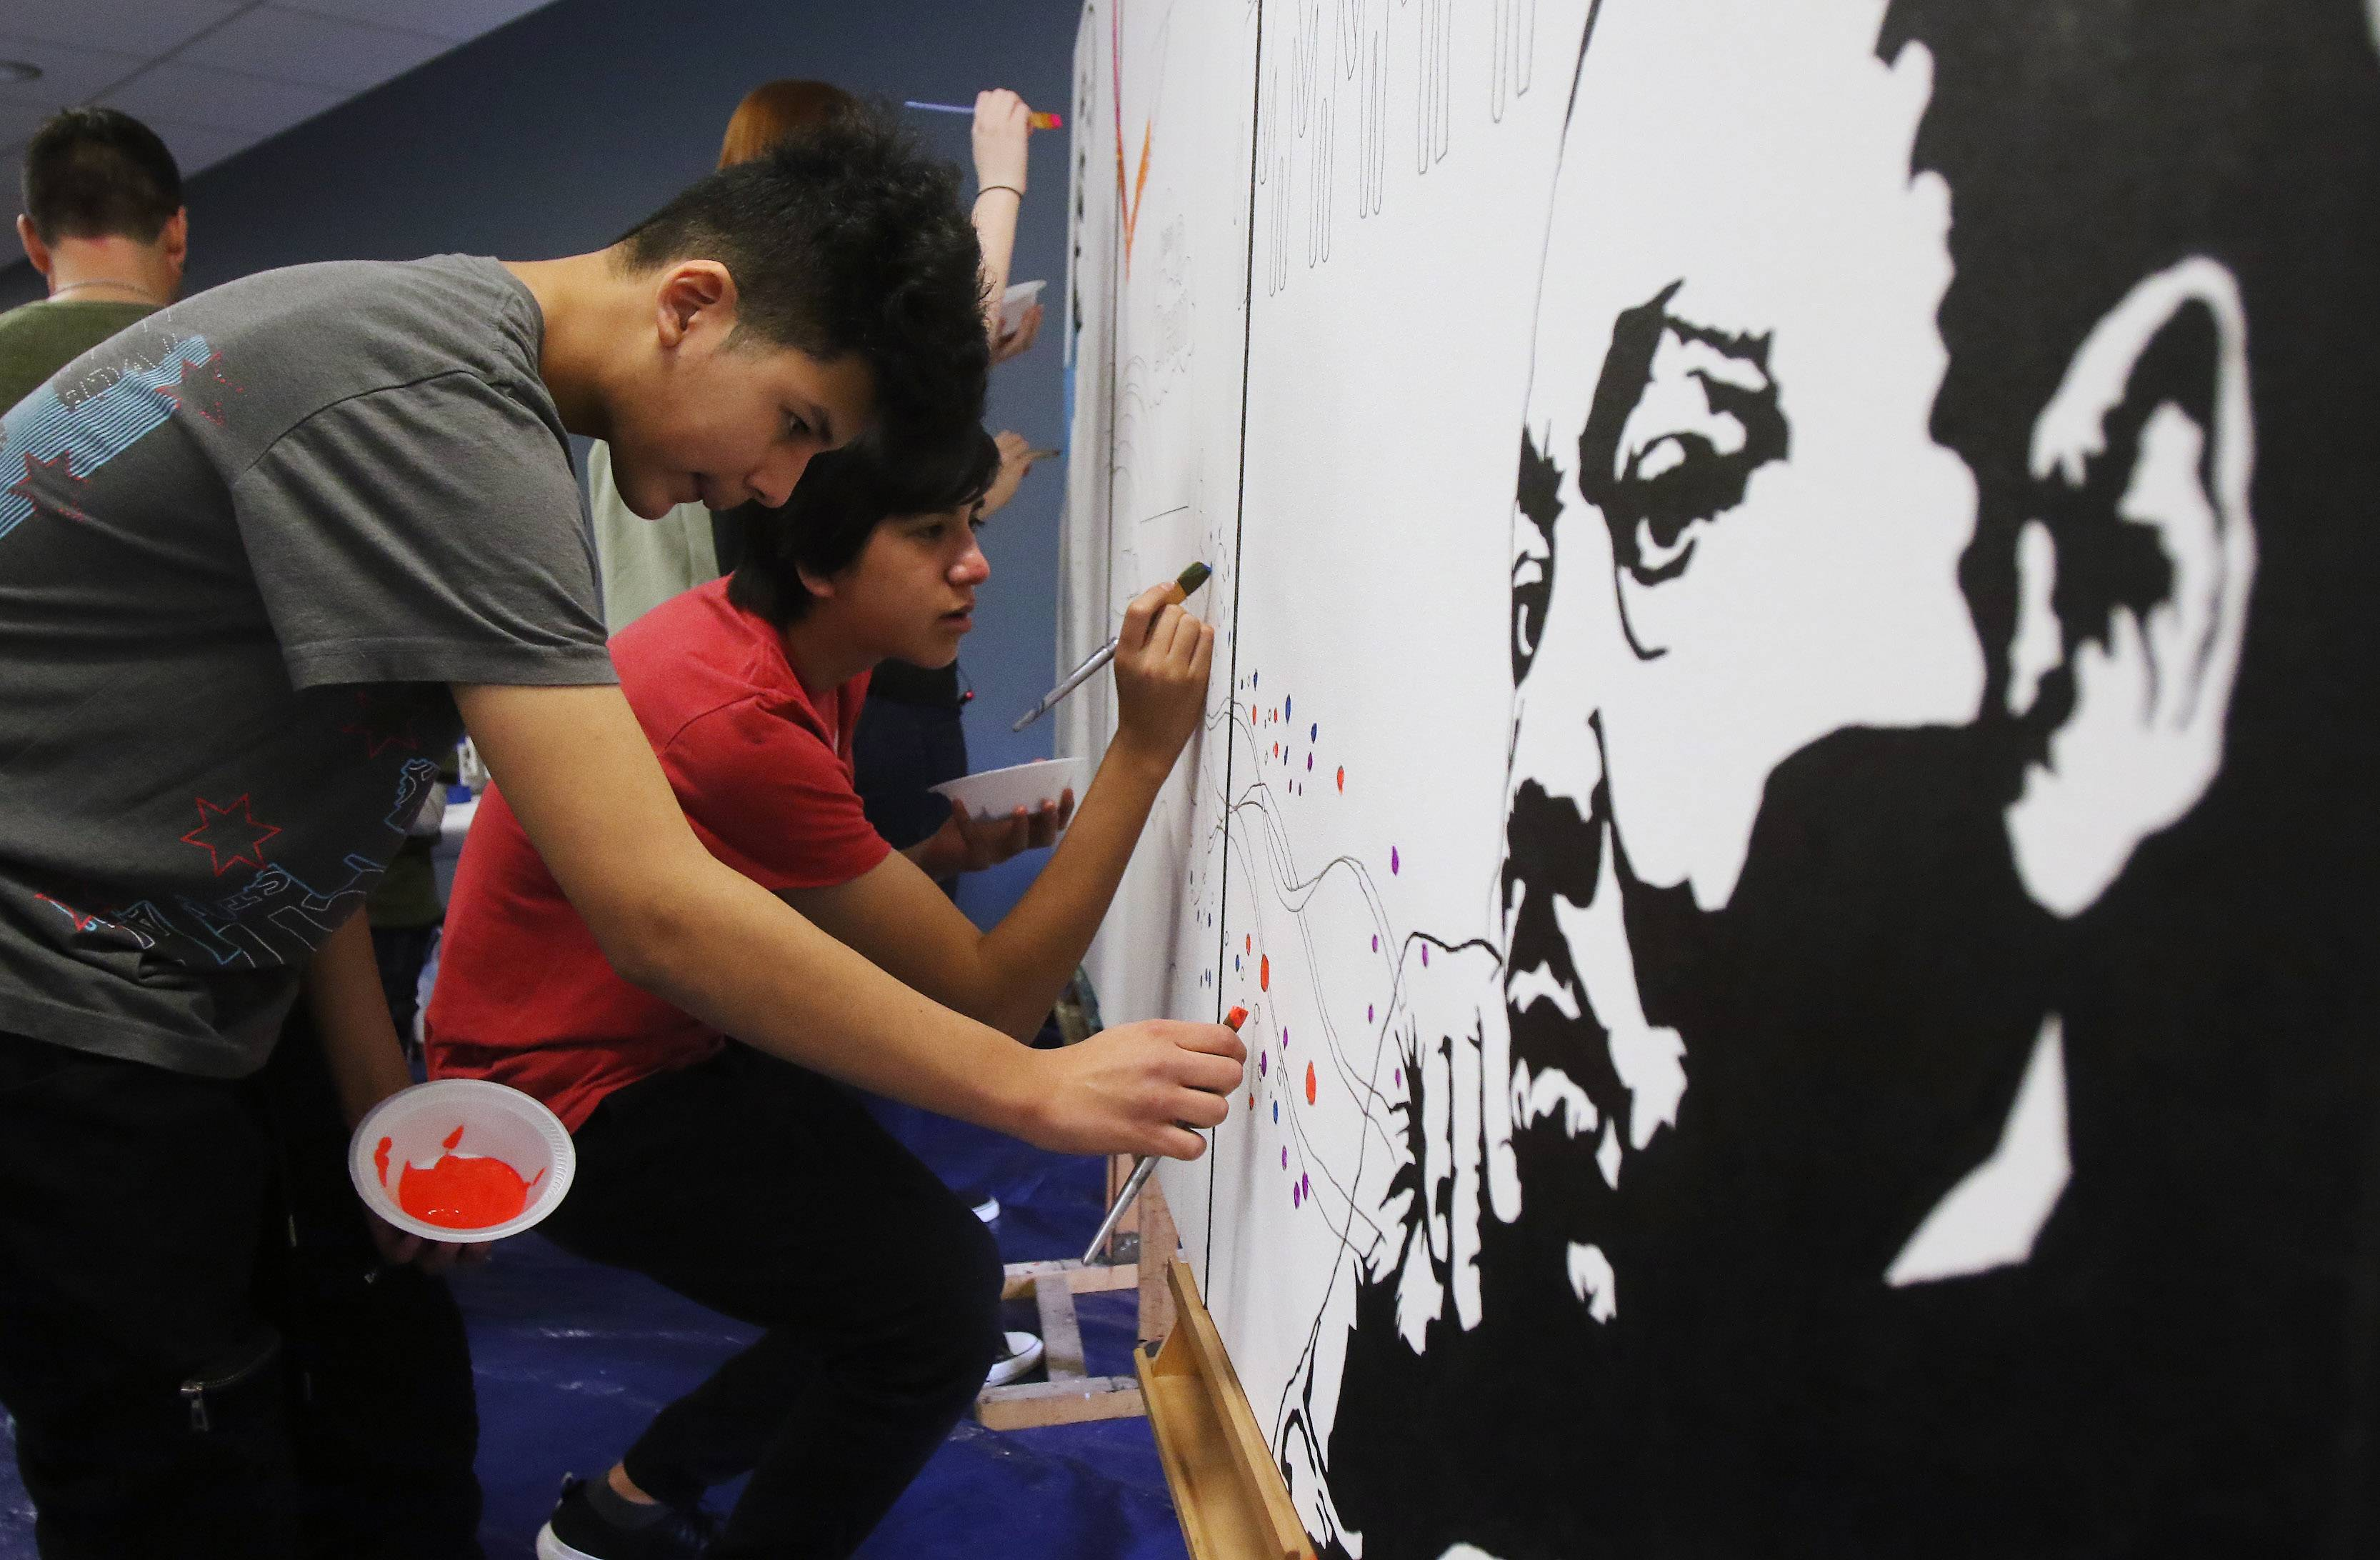 Marcos Vasquez, 14, of Rolling Meadows, left, and Francisco Cedillo, 16, of Mount Prospect help paint a mural honoring the life and legacy of Martin Luther King Jr. on Monday at the Arlington Heights Memorial Library.